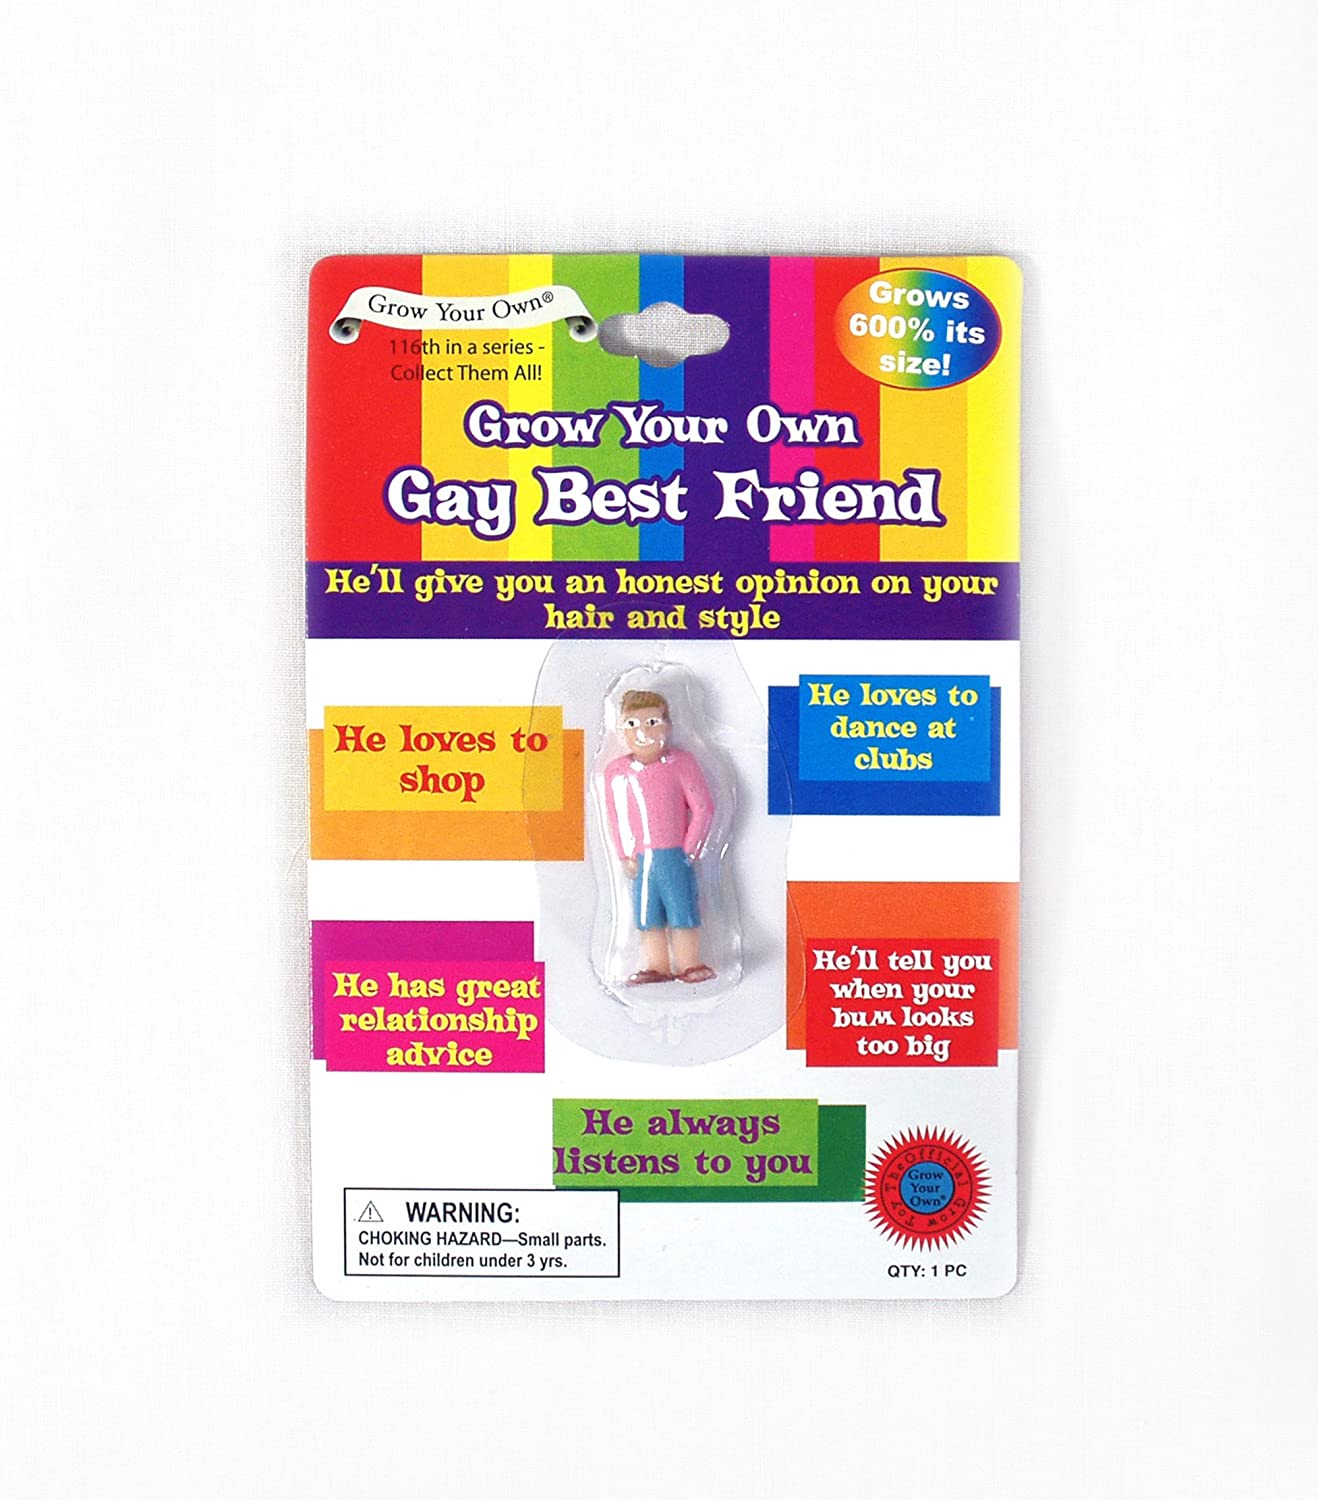 amazoncom grow your own gay best friend toys games - What To Give Your Best Friend For Christmas